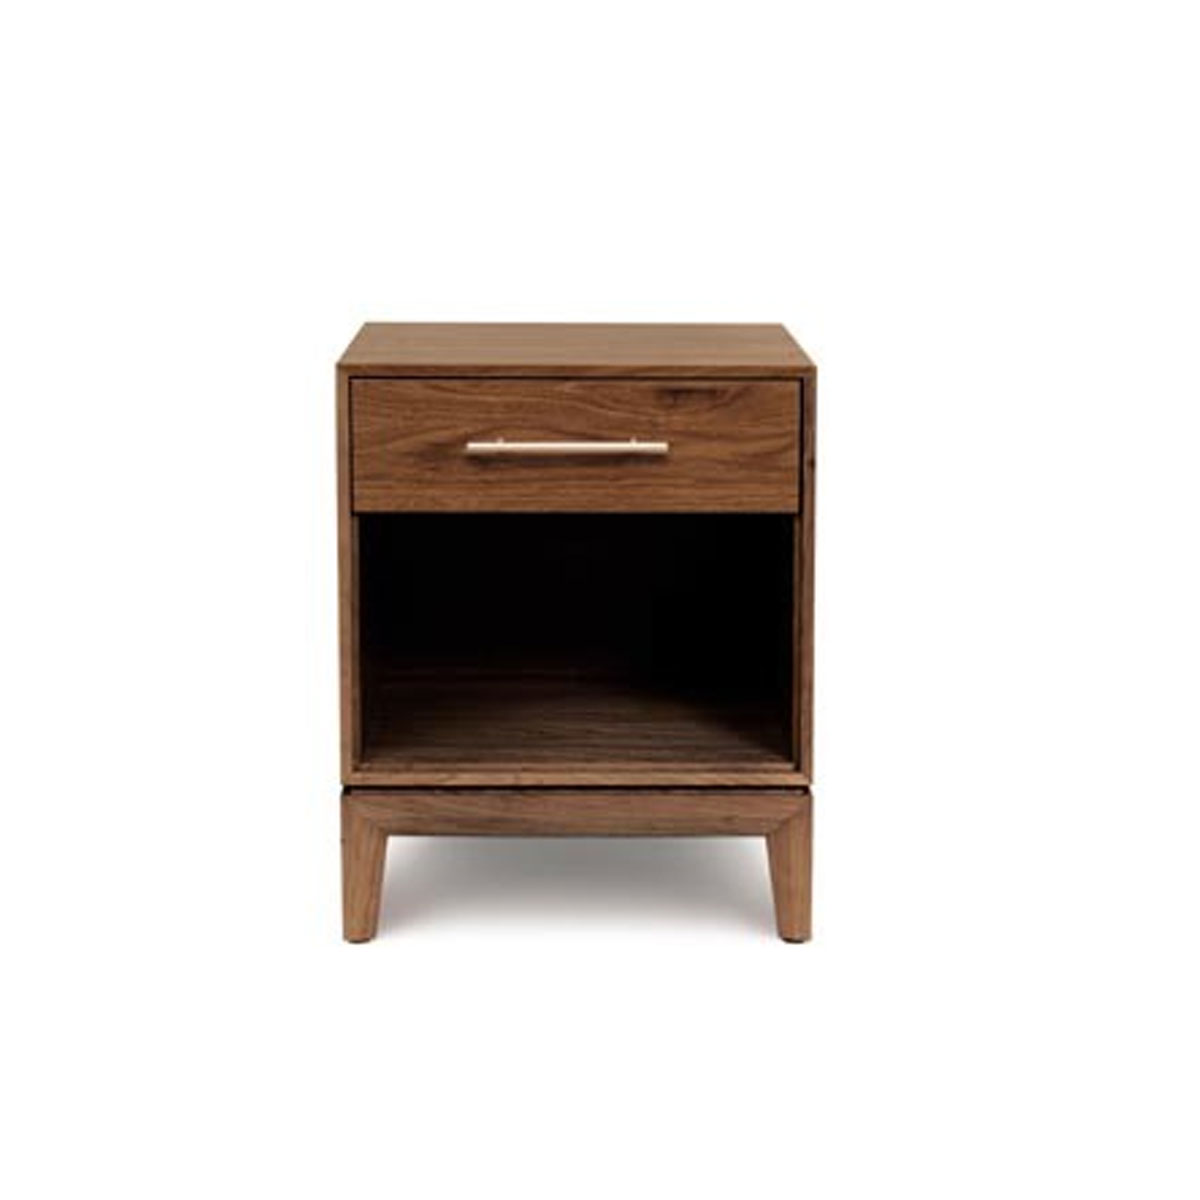 Copeland Mansfield 1 Drawer in Walnut